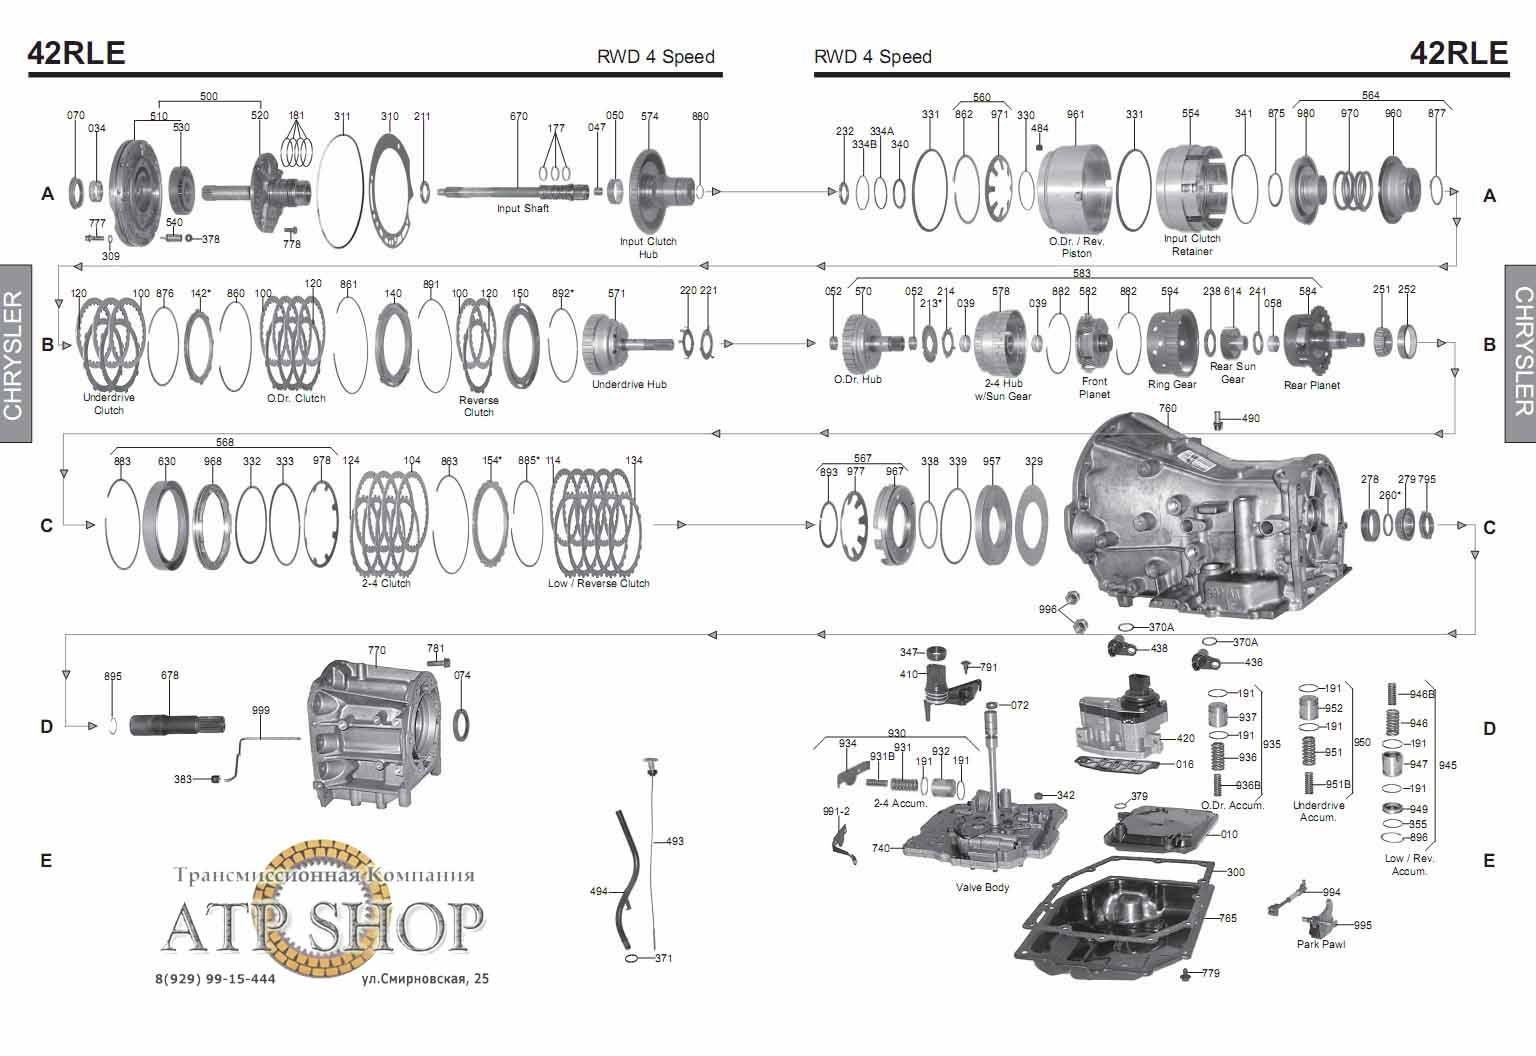 hight resolution of jeep 42rle transmission diagrams wiring diagram expert 42rle transmission wiring diagram 42rle transmission diagram